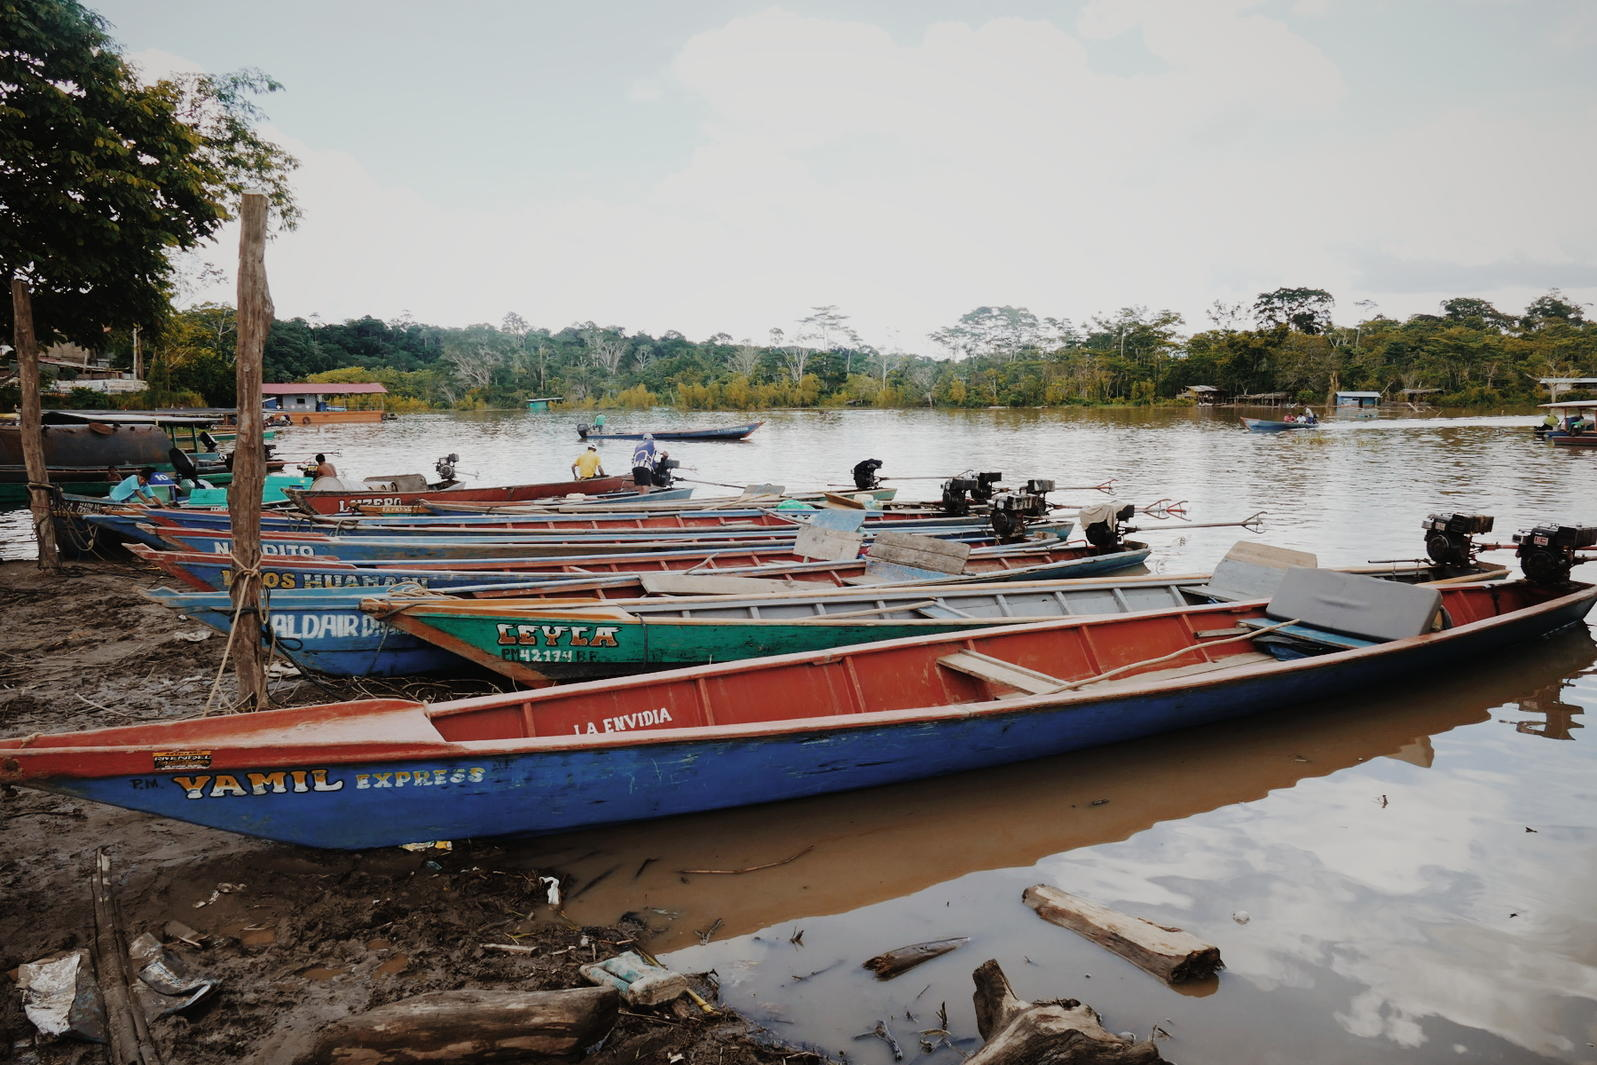 Colorful water taxis lined up at the edge of the Madre de Dios River in Puerto Maldonado, Peru. Noah Strycker